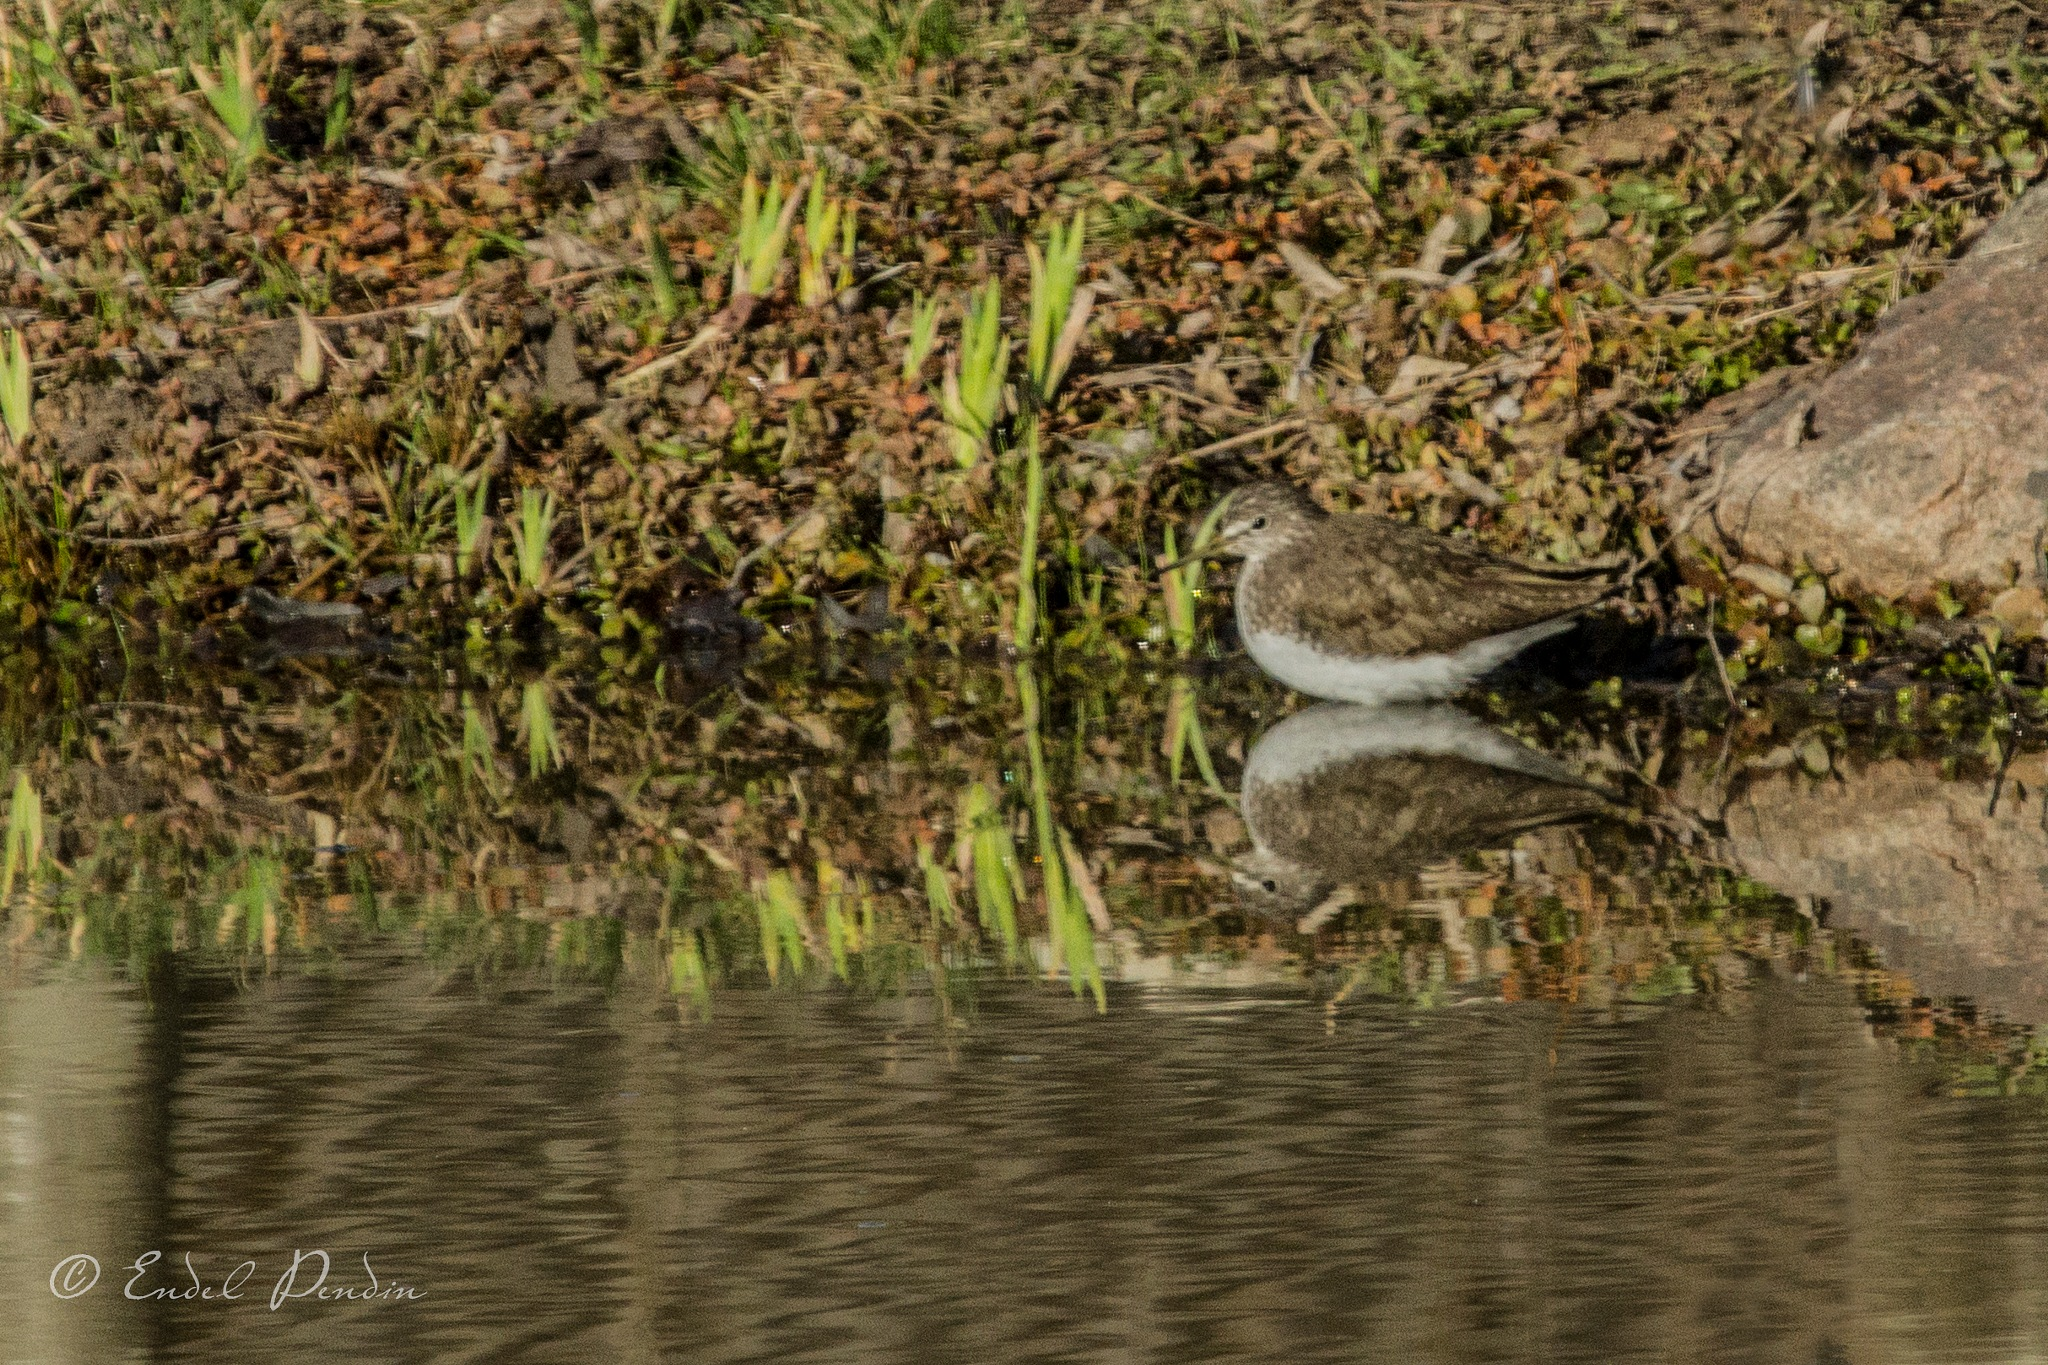 The common sandpiper (Actitis hypoleucos). by sarvikpytt